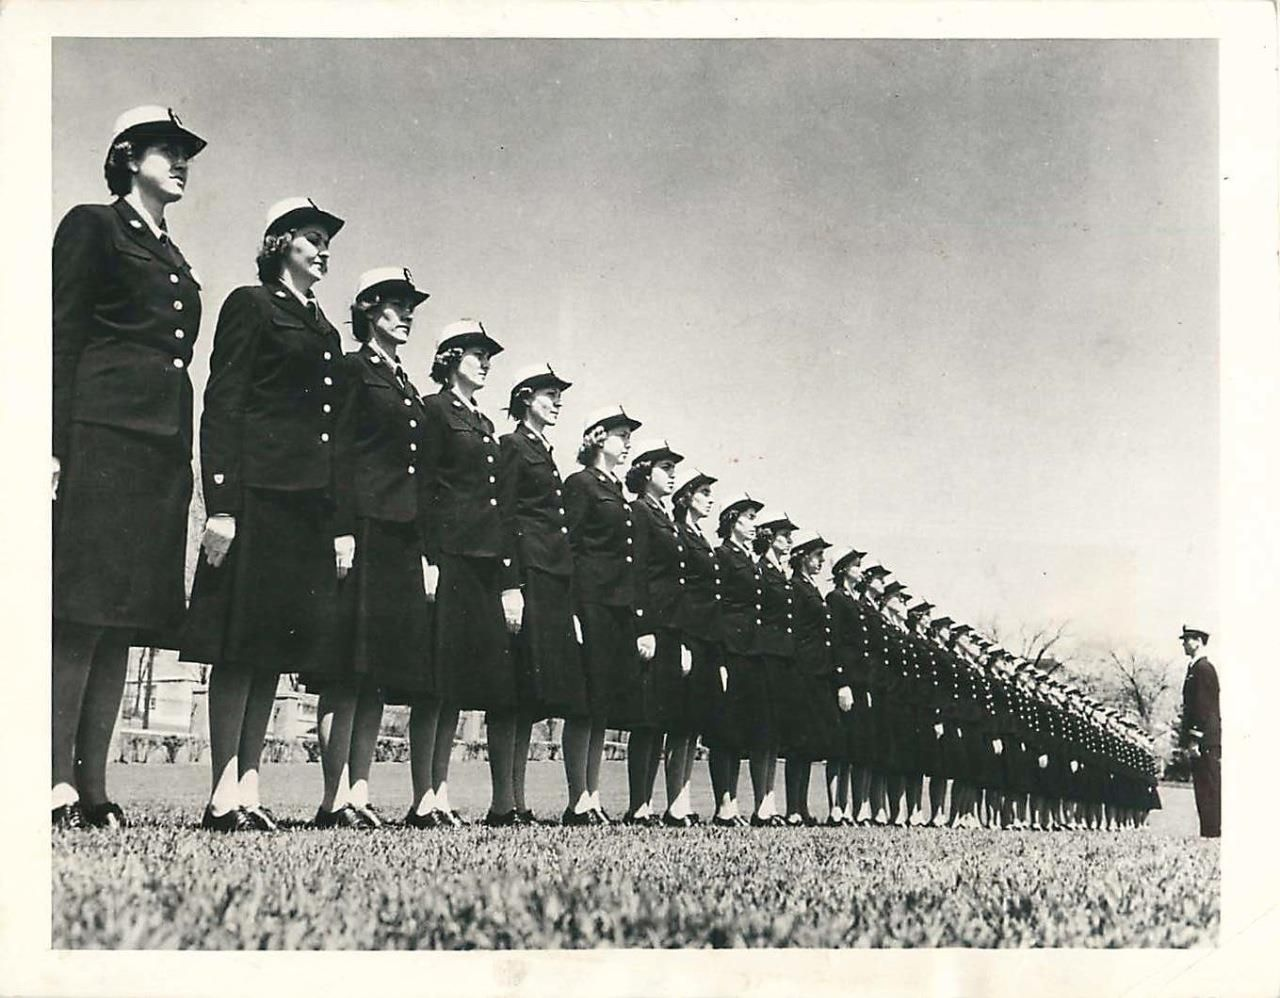 """Original Press Caption: """"NEW LONDON, CONN - With chins up, SPAR cadets stand inspection at the U.S. Coast Guard Academy where they are undergoing an indoctrination course preparatory to becoming officers in the Coast Guard Women's Reserve."""" June 29, 1943. Official US Coast Guard Photo."""